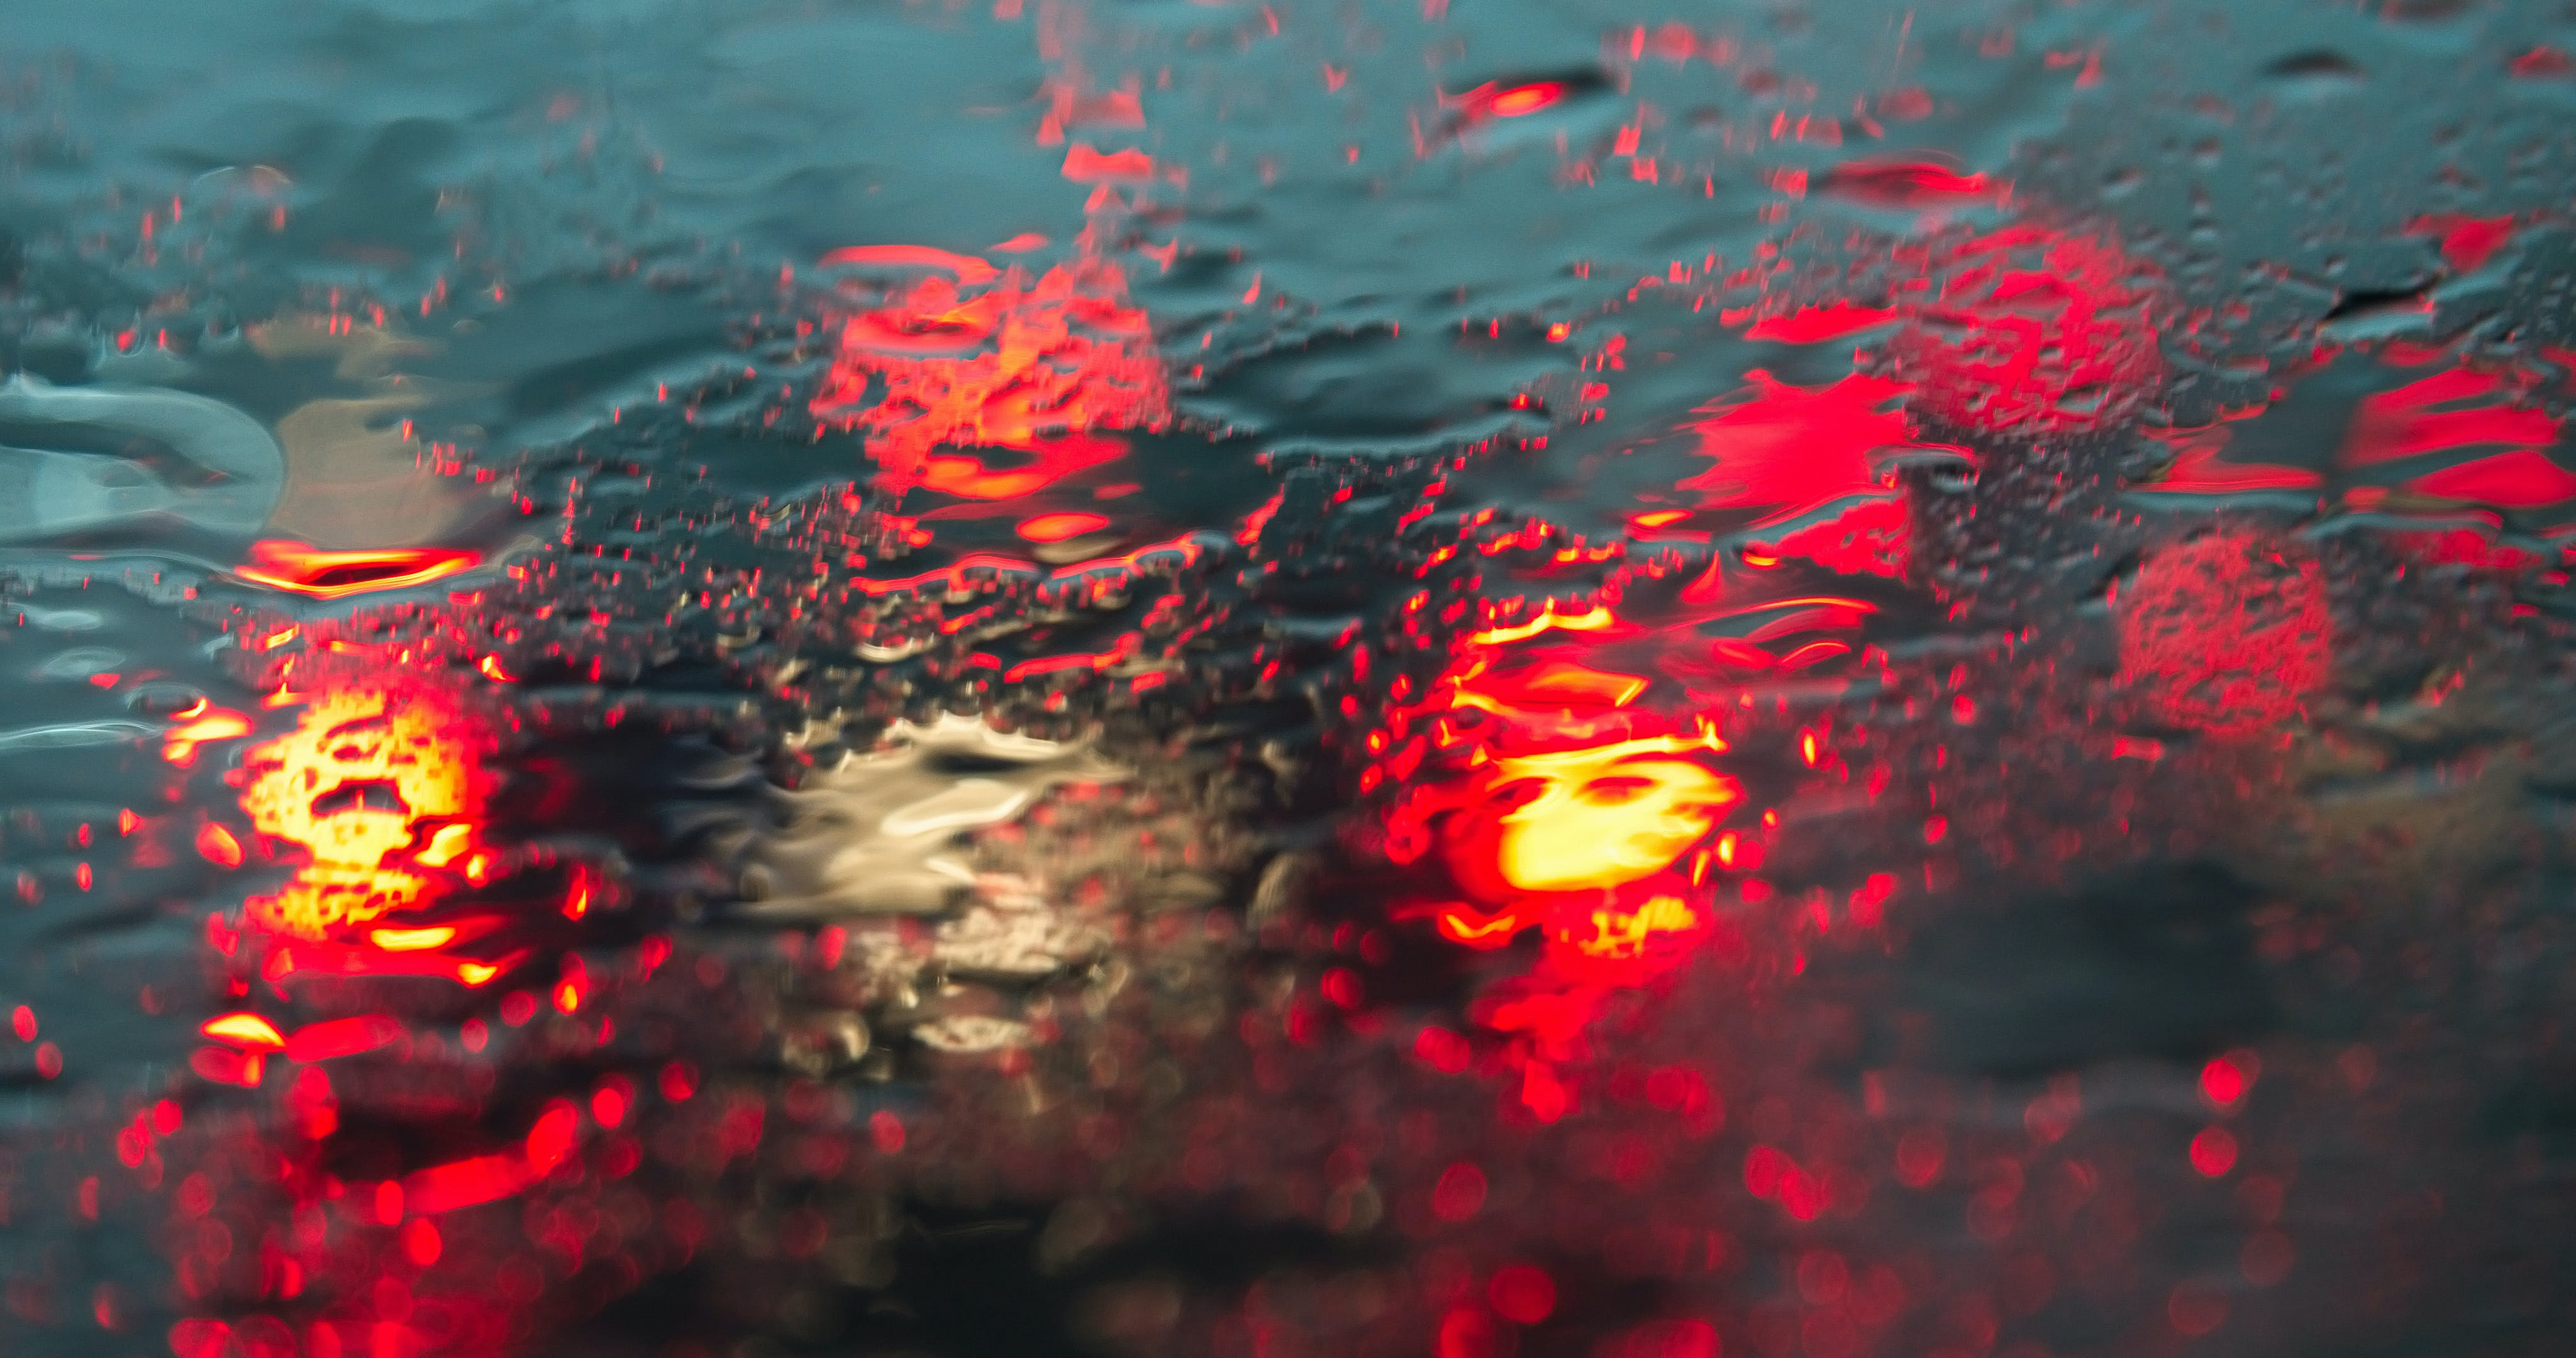 Clear Glass Covered in Water With Ray of Red Lights